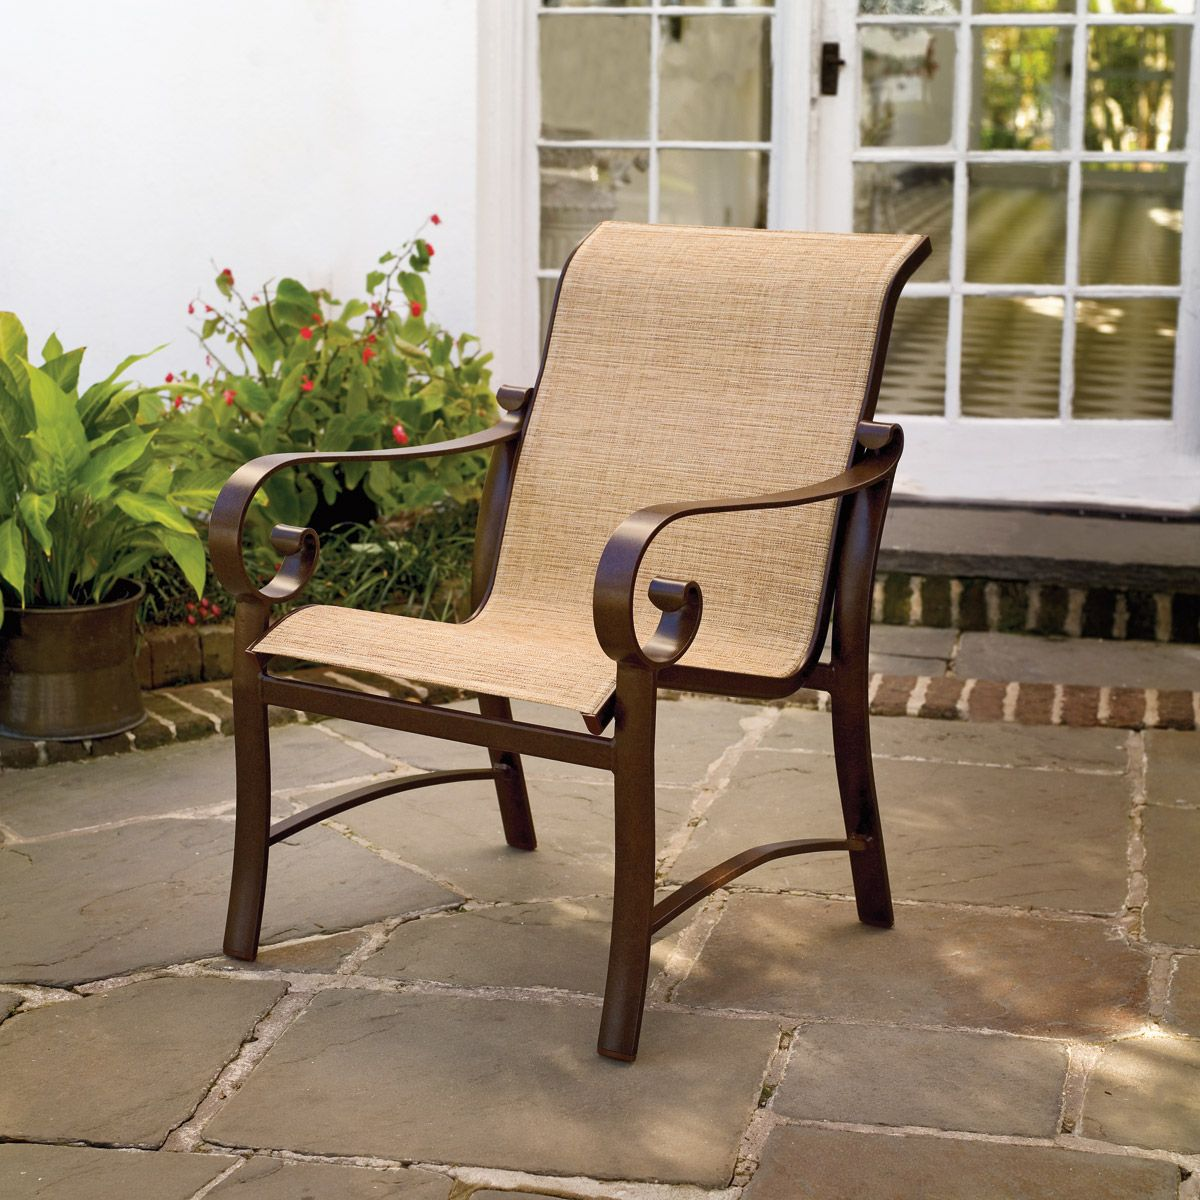 vinyl mesh fabric for sling chairs beach chair sale how to paint outdoor i patio porch and